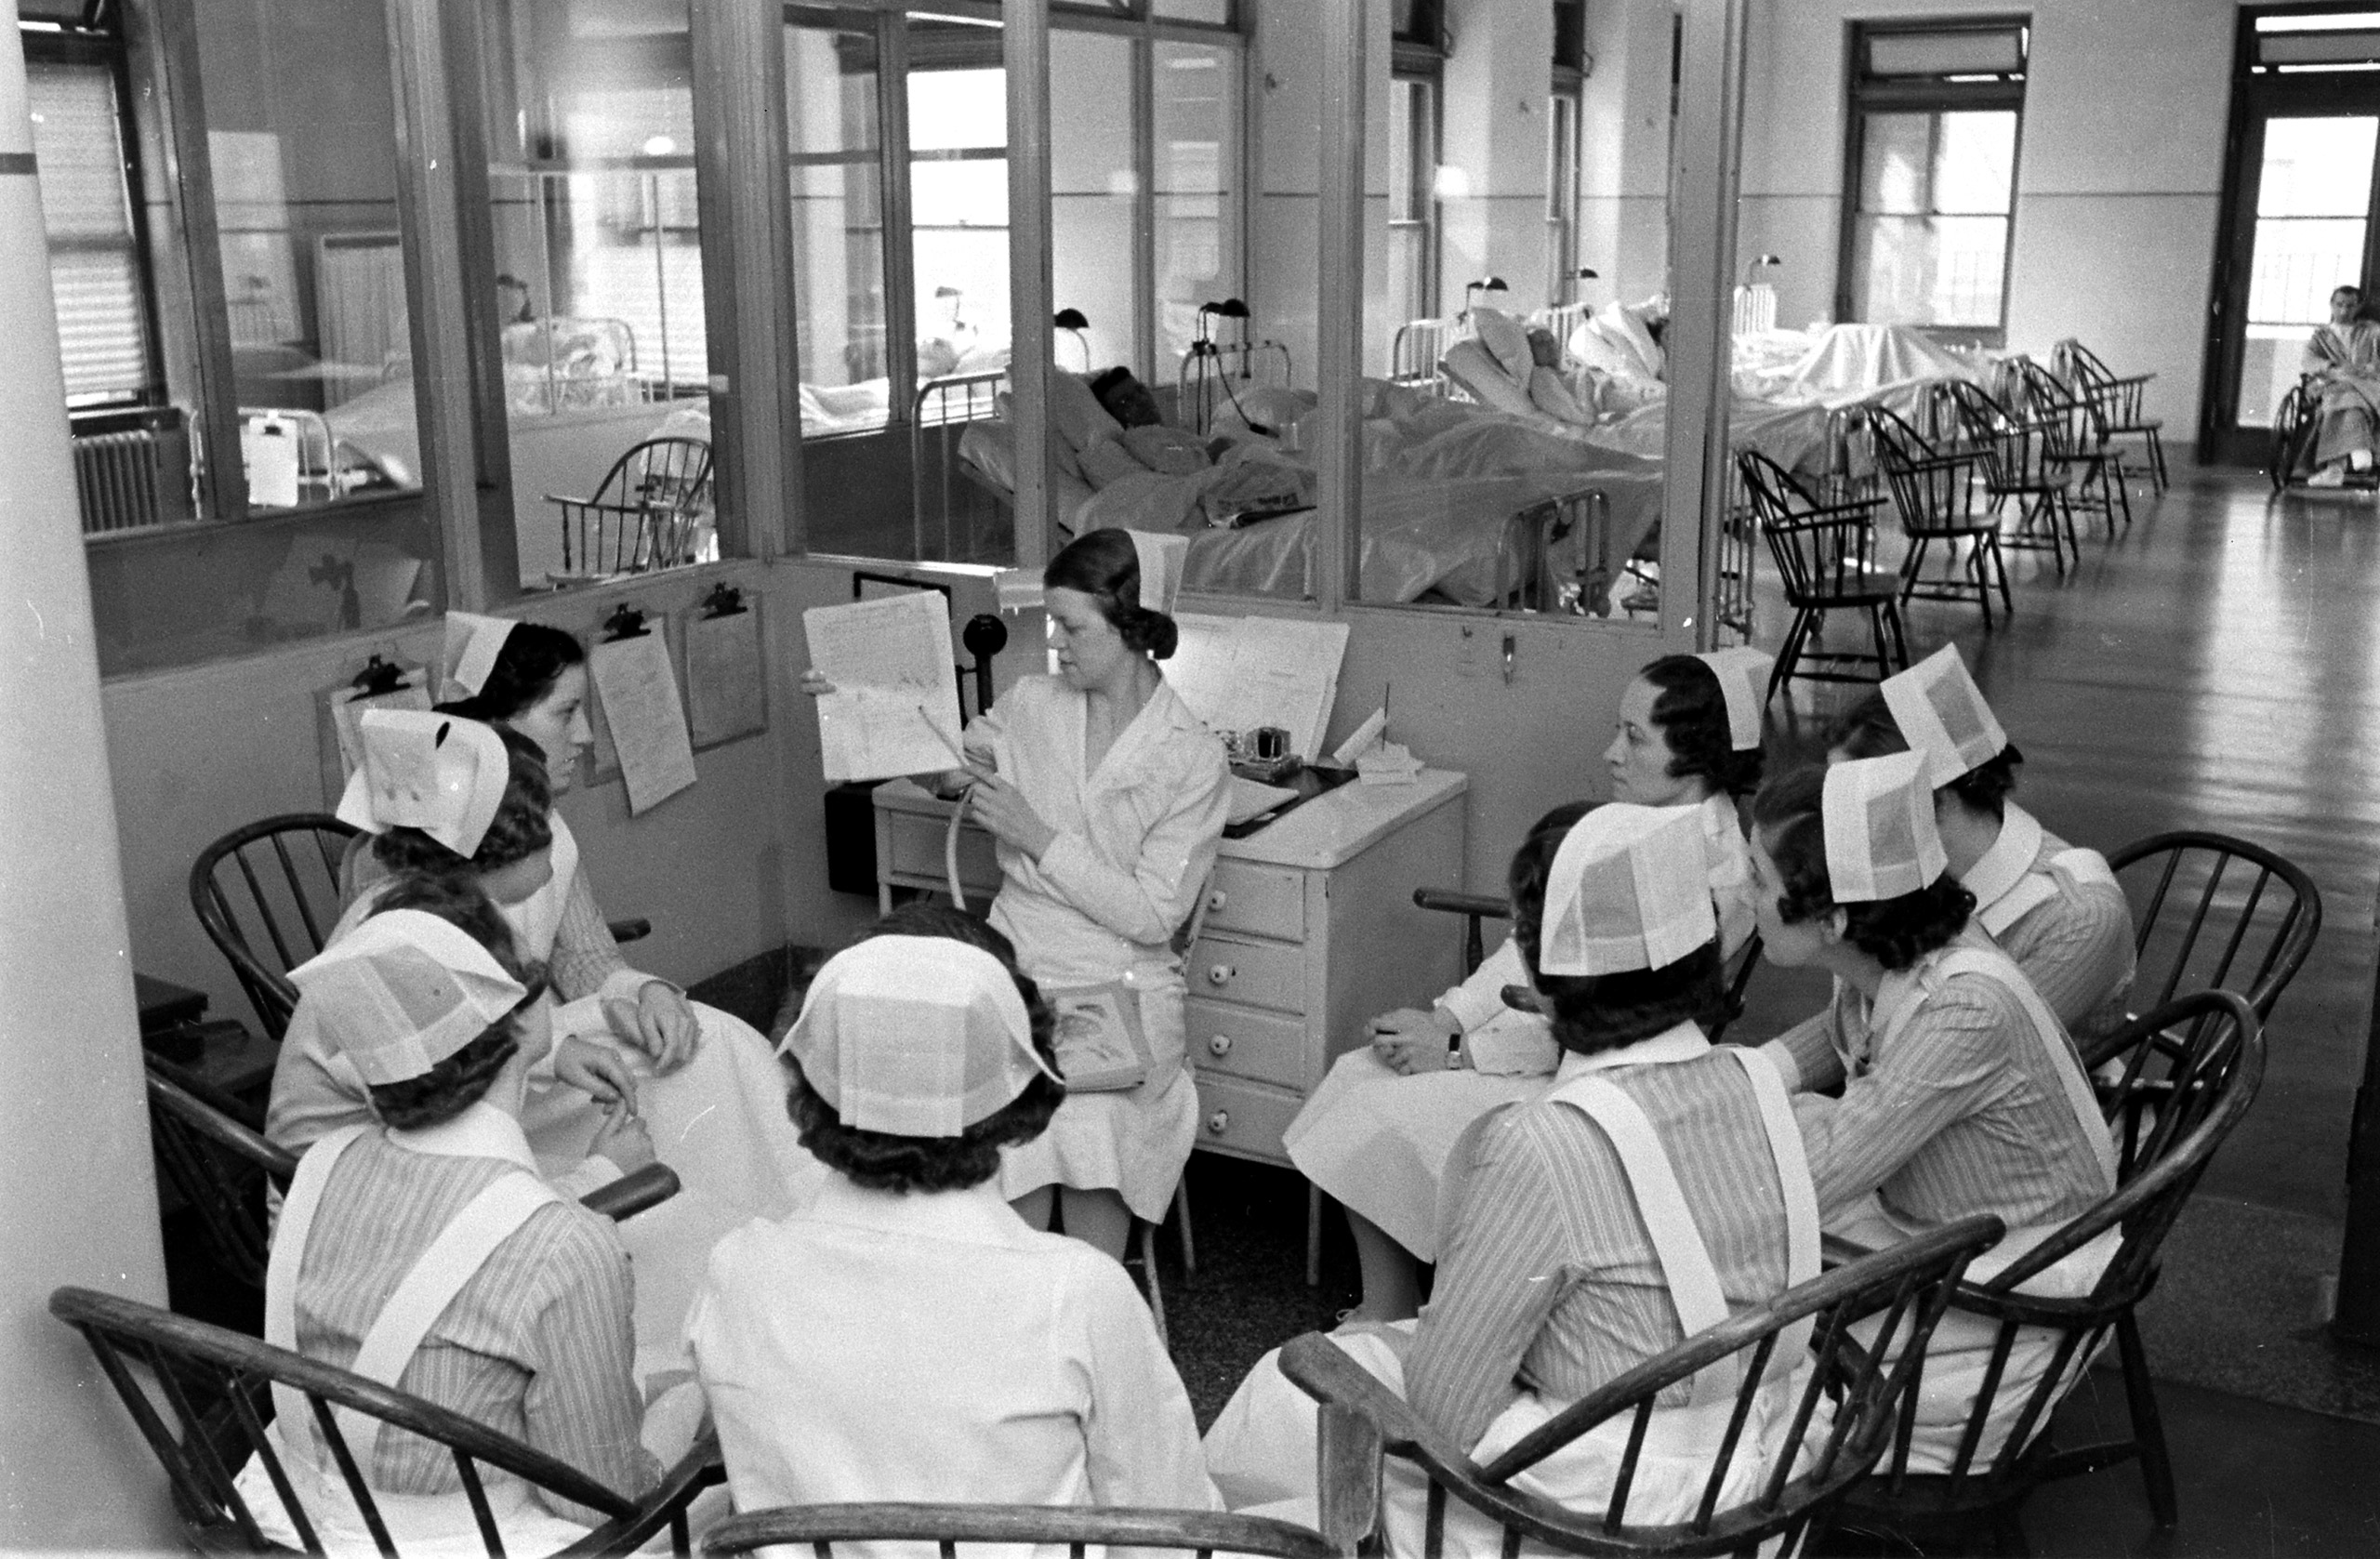 <b>Caption from LIFE.</b> Ward duty begins at 7 am, when nurses meet with the head day nurse (center), who relays to them the report left by the head night nurse. She here explains the chart of a patient in the male surgical ward (in background). Striped garb indicates capped nurses; white uniforms, graduate nurses.